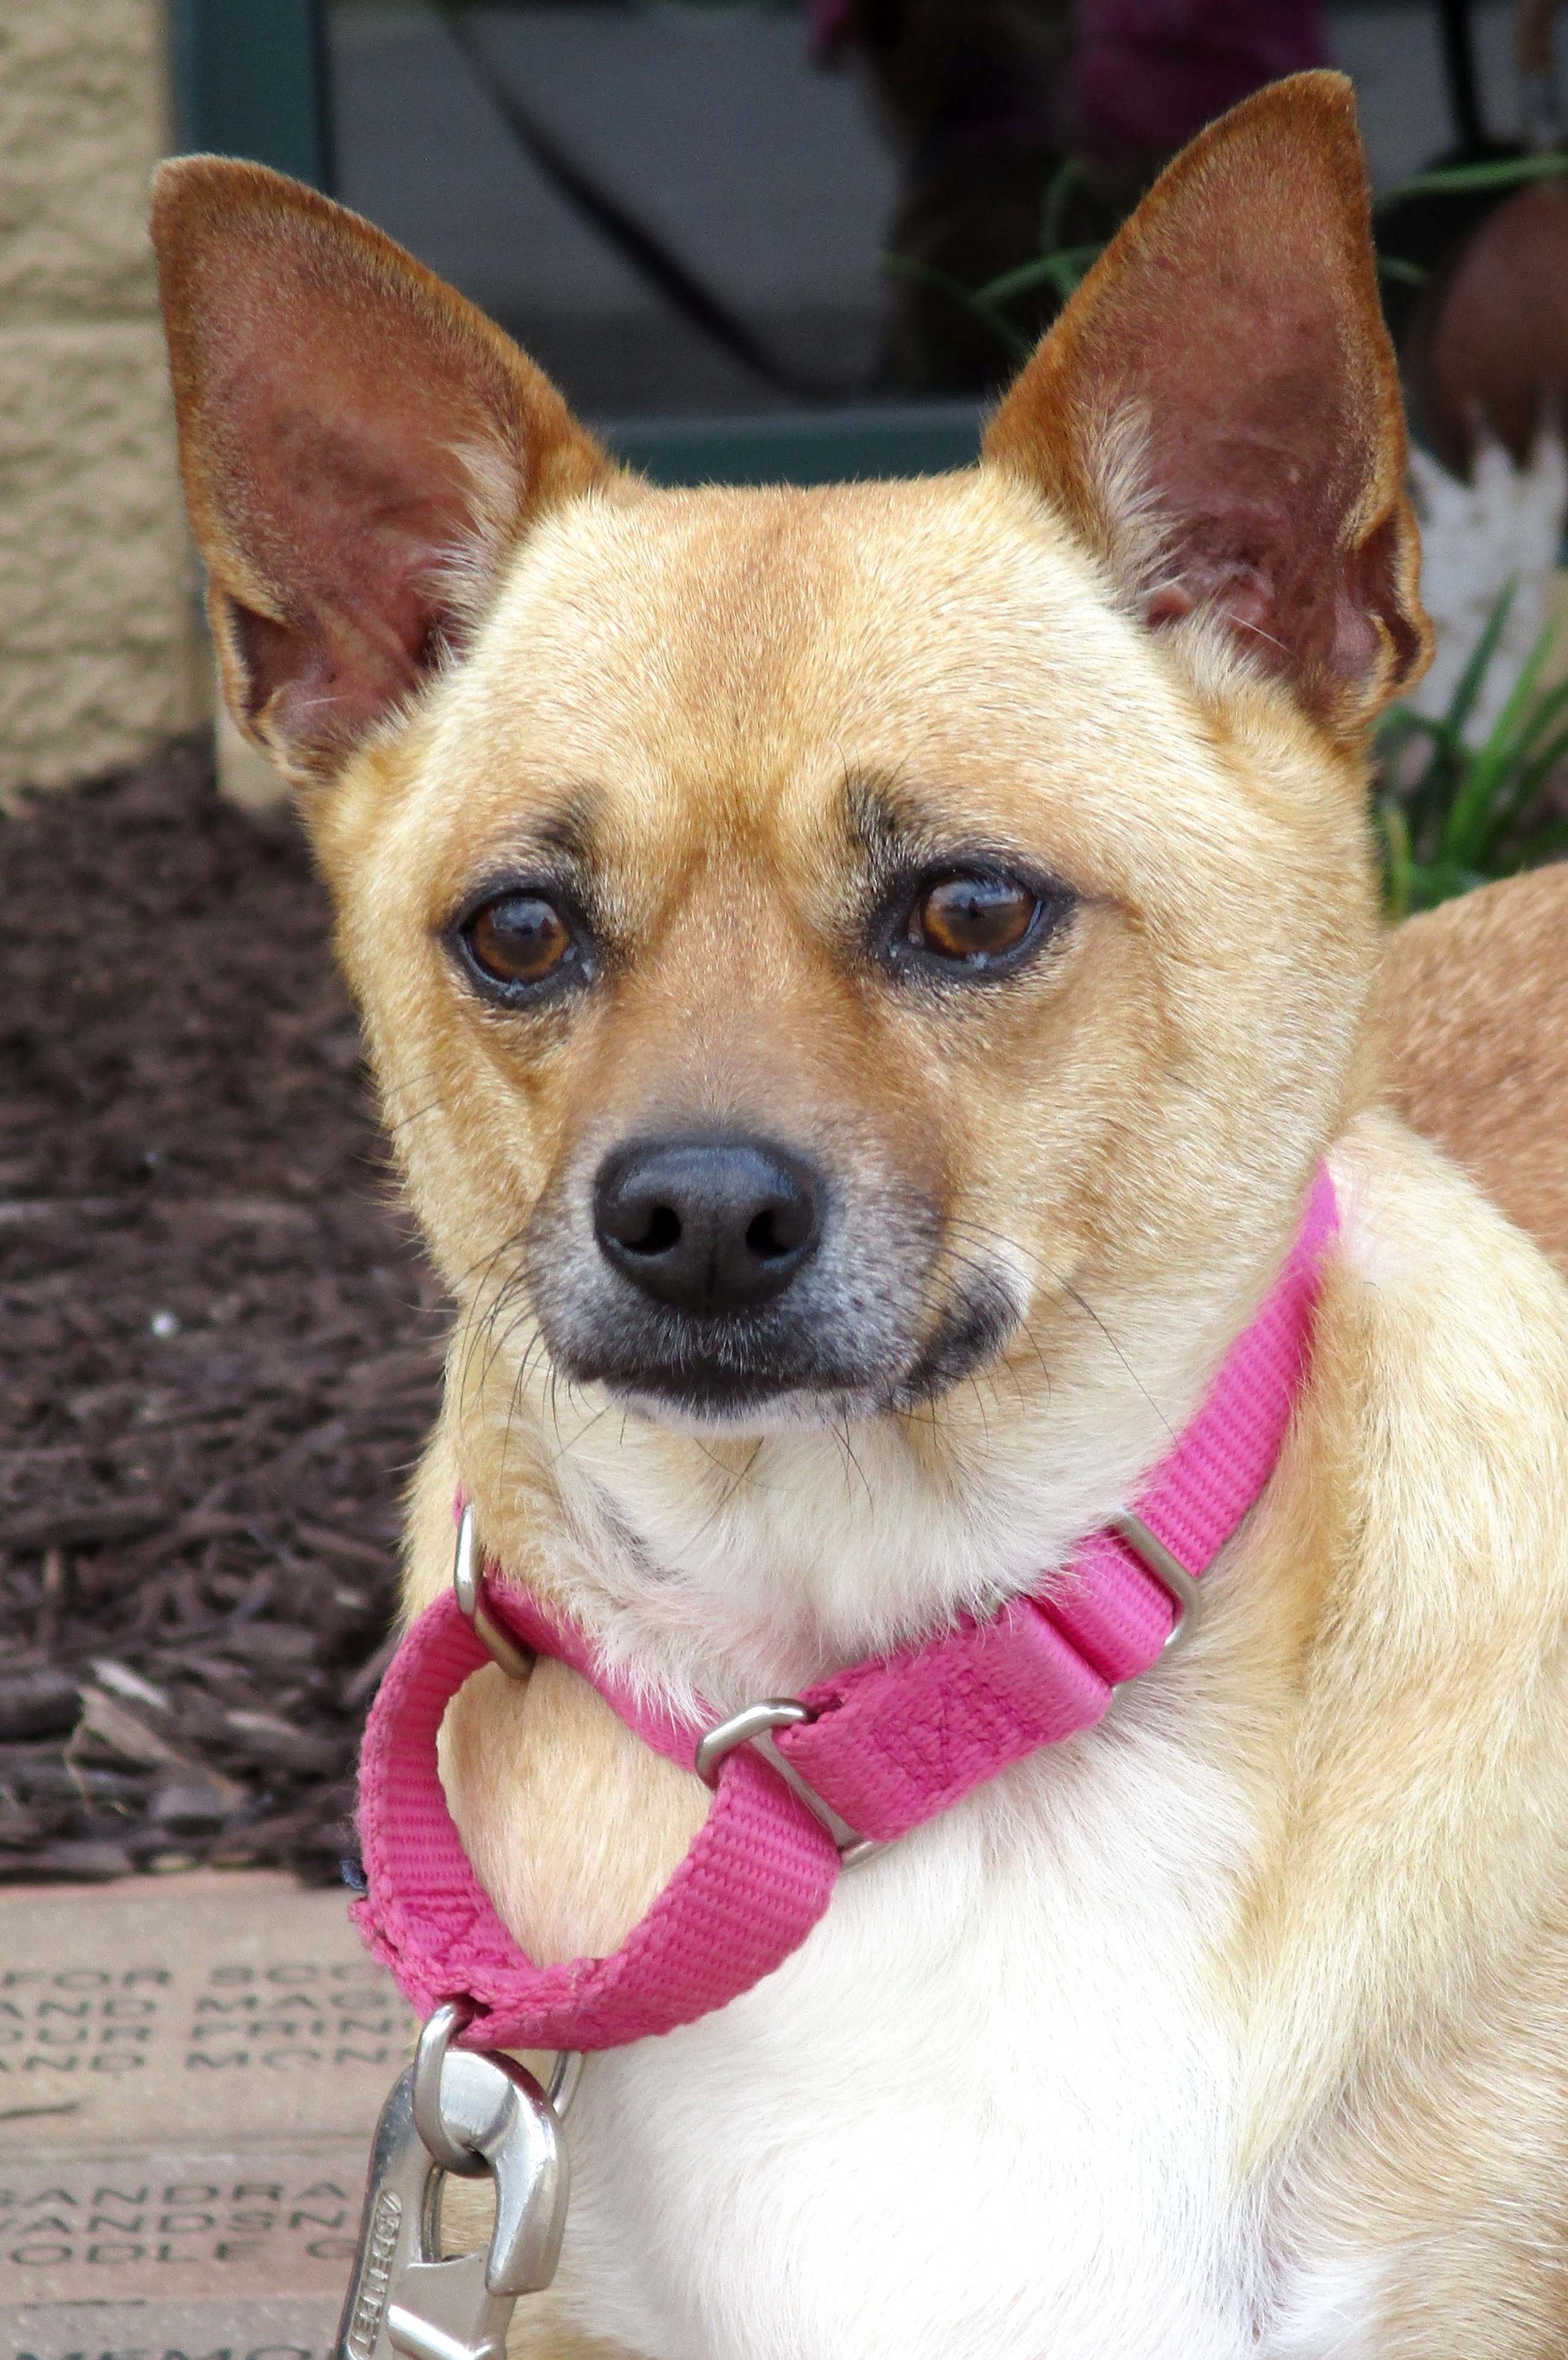 Snuggles is a 5 year old Chihuahua mix. She would do best in a home with teens and older. We are working on boosting her confidence. She is slow to warm up but once she does you'll have a pal for years!